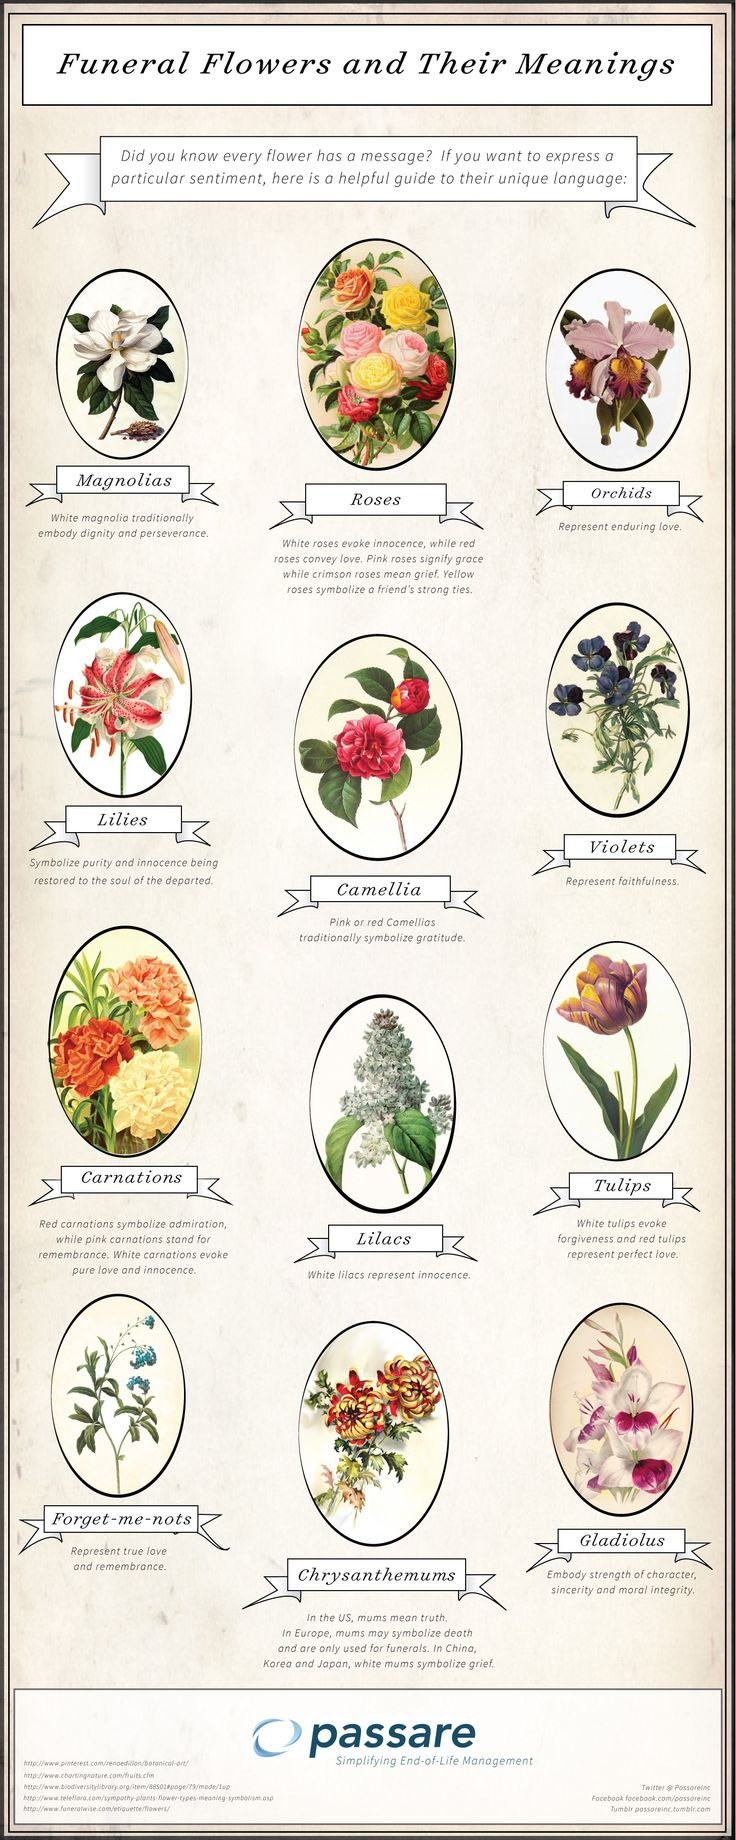 Funeral Flowers and their Meaning. Shared via Passare.